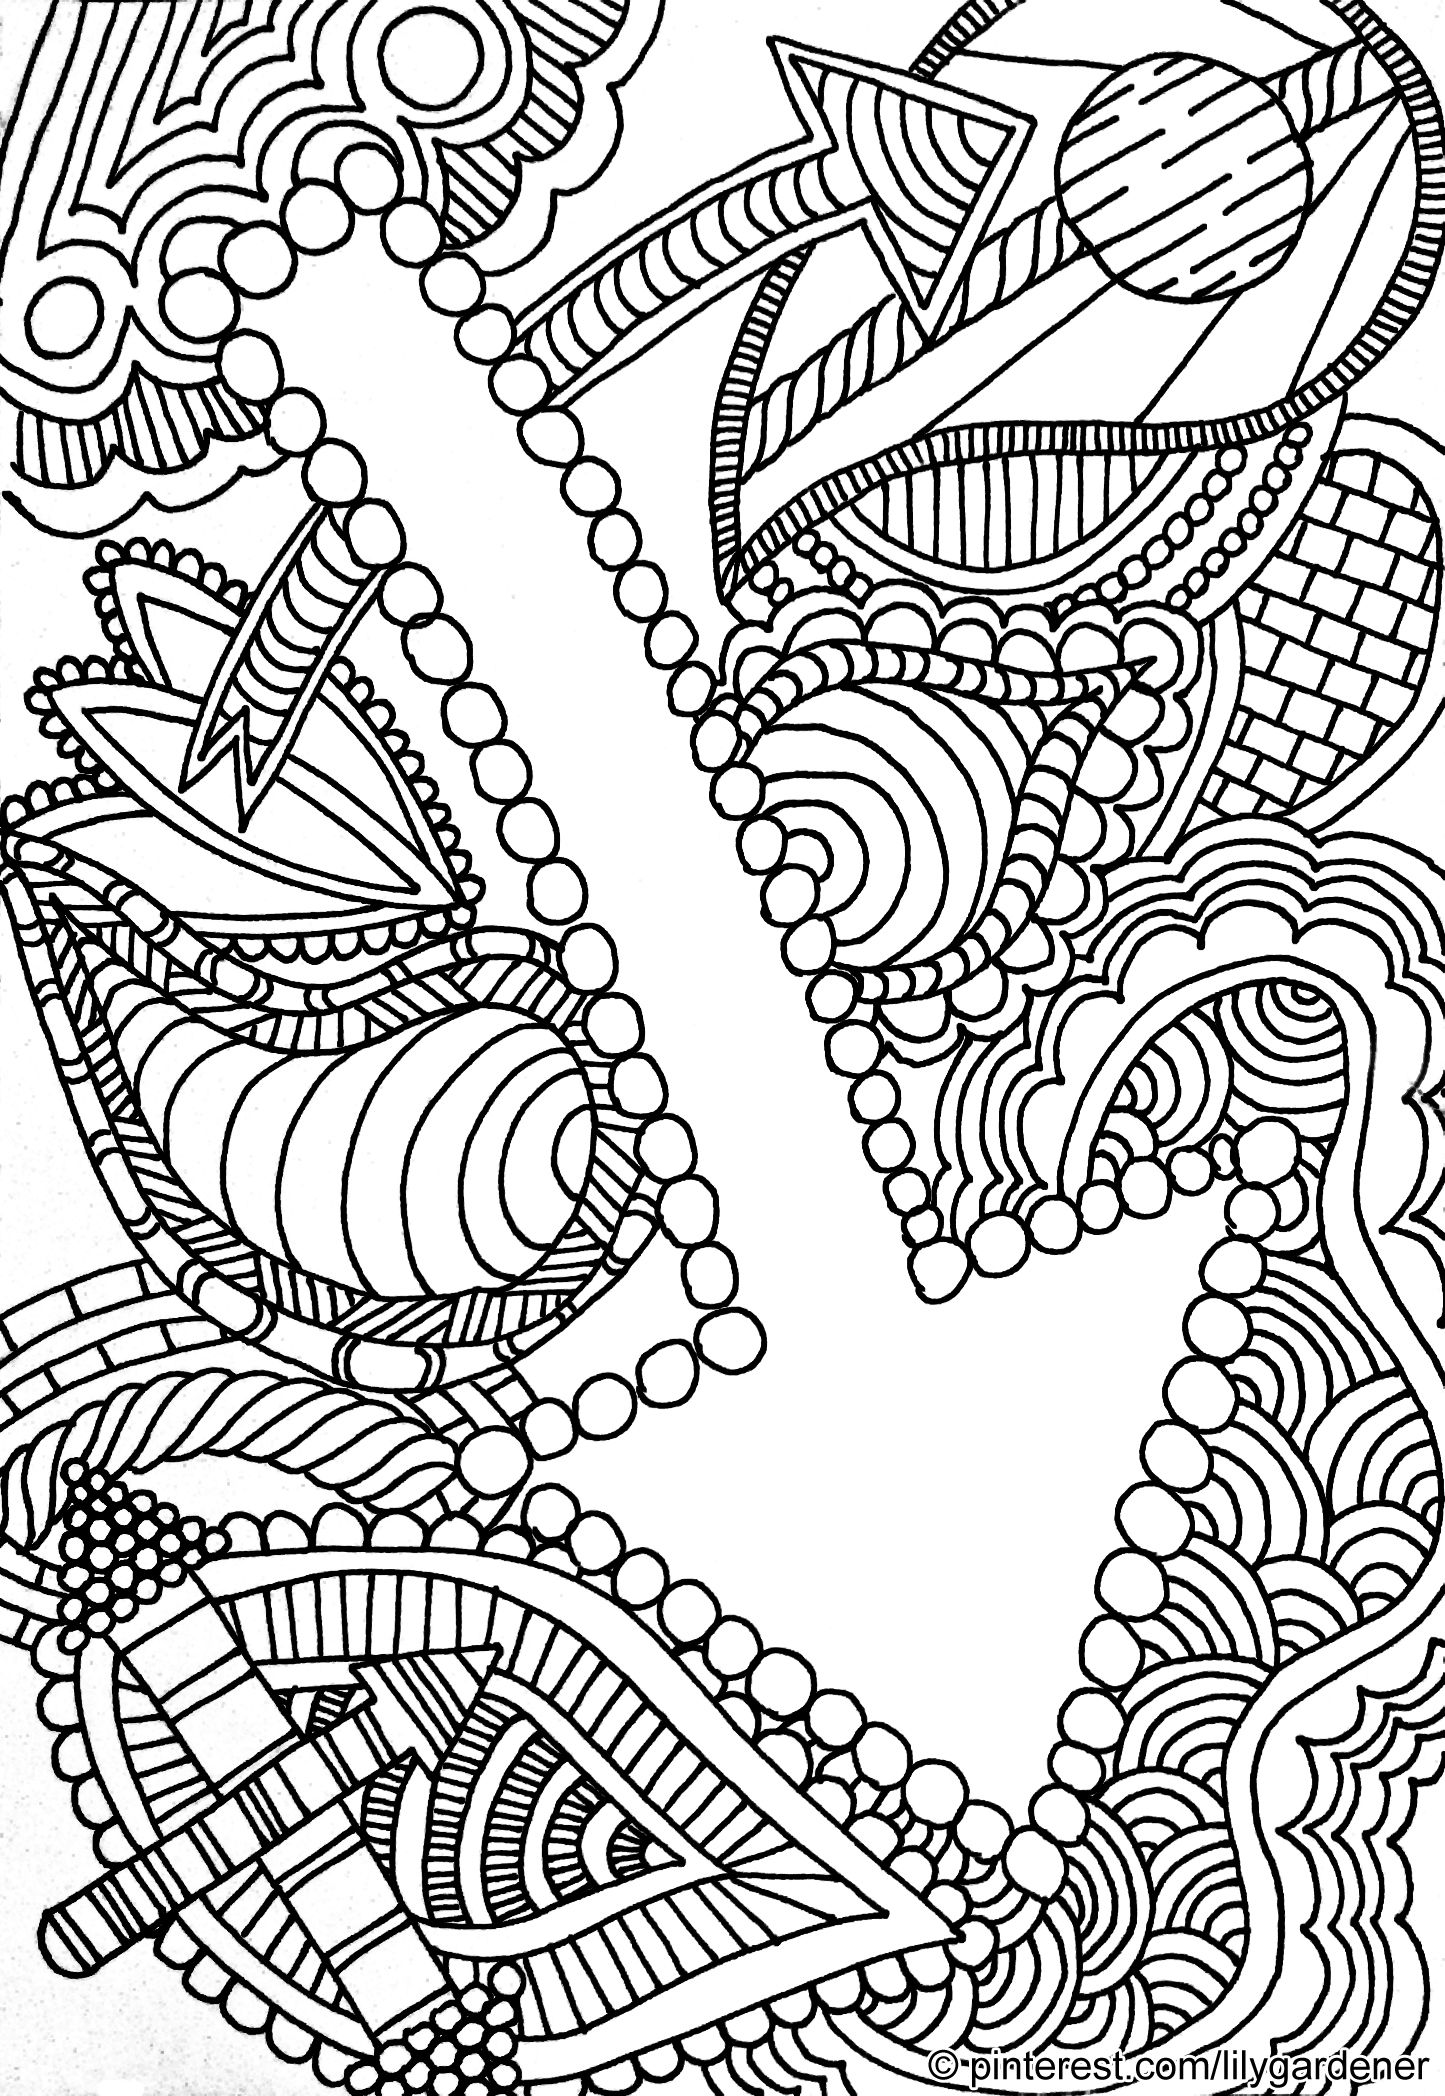 modern art coloring pages | Abstract Coloring Page for Adults (high resolution), free ...